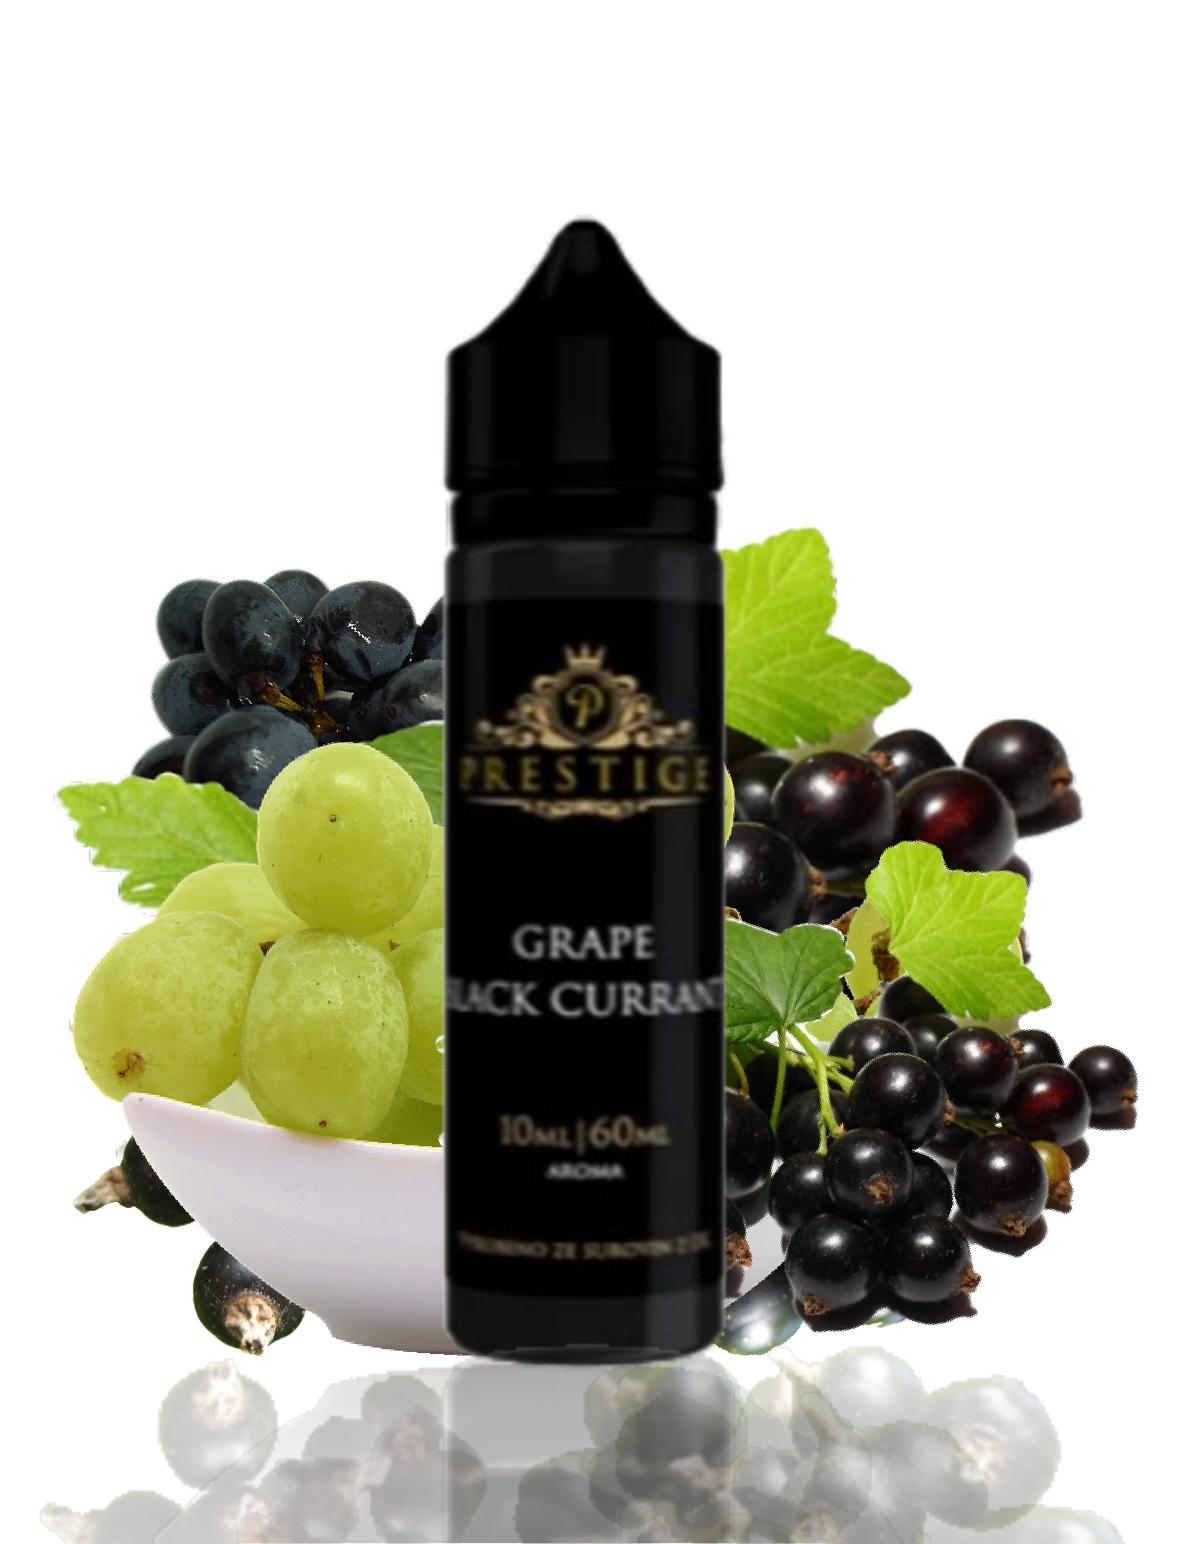 10 ml Prestige - Grape Black Currant (Shake & Vape)